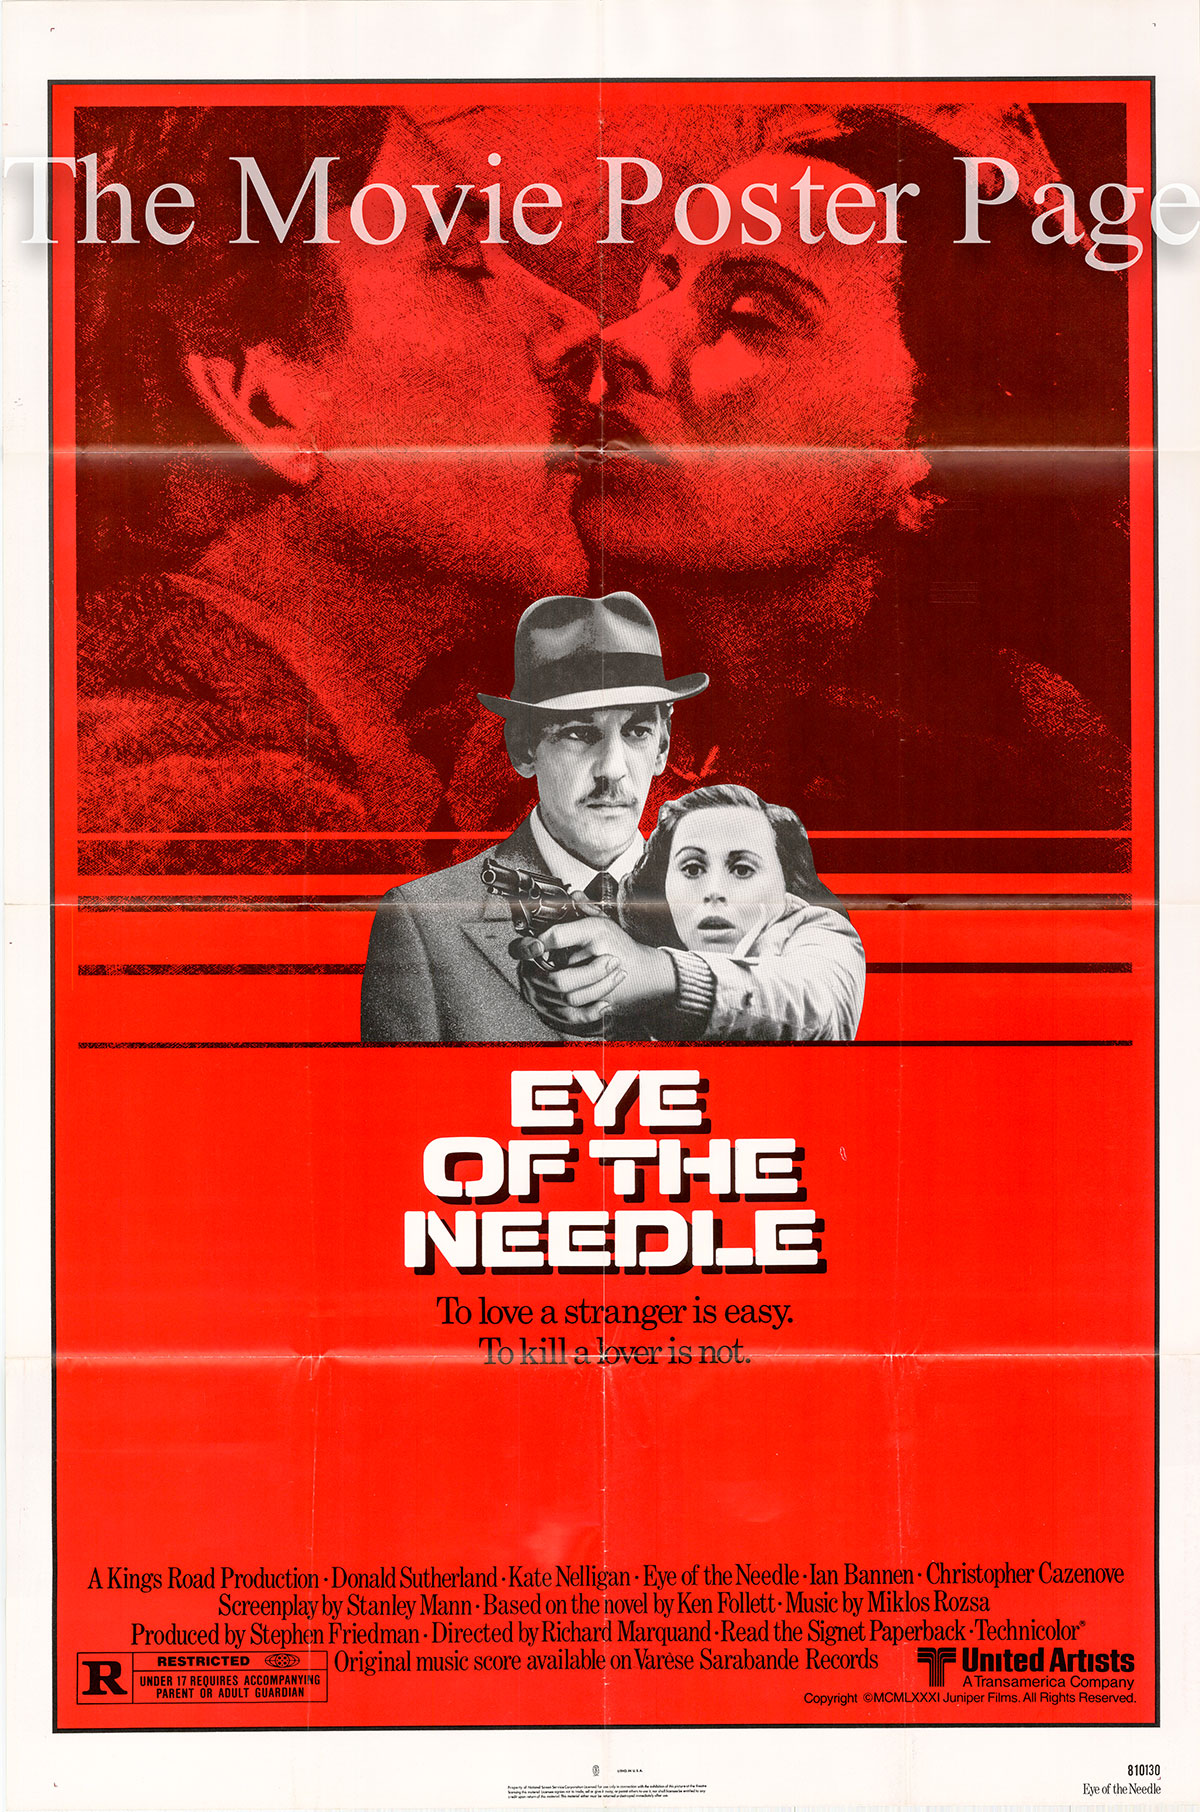 Pictured is a US one-sheet promotional poster for the 1981 Richard Marquand film Eye of the Needle starring Donald Sutherland.